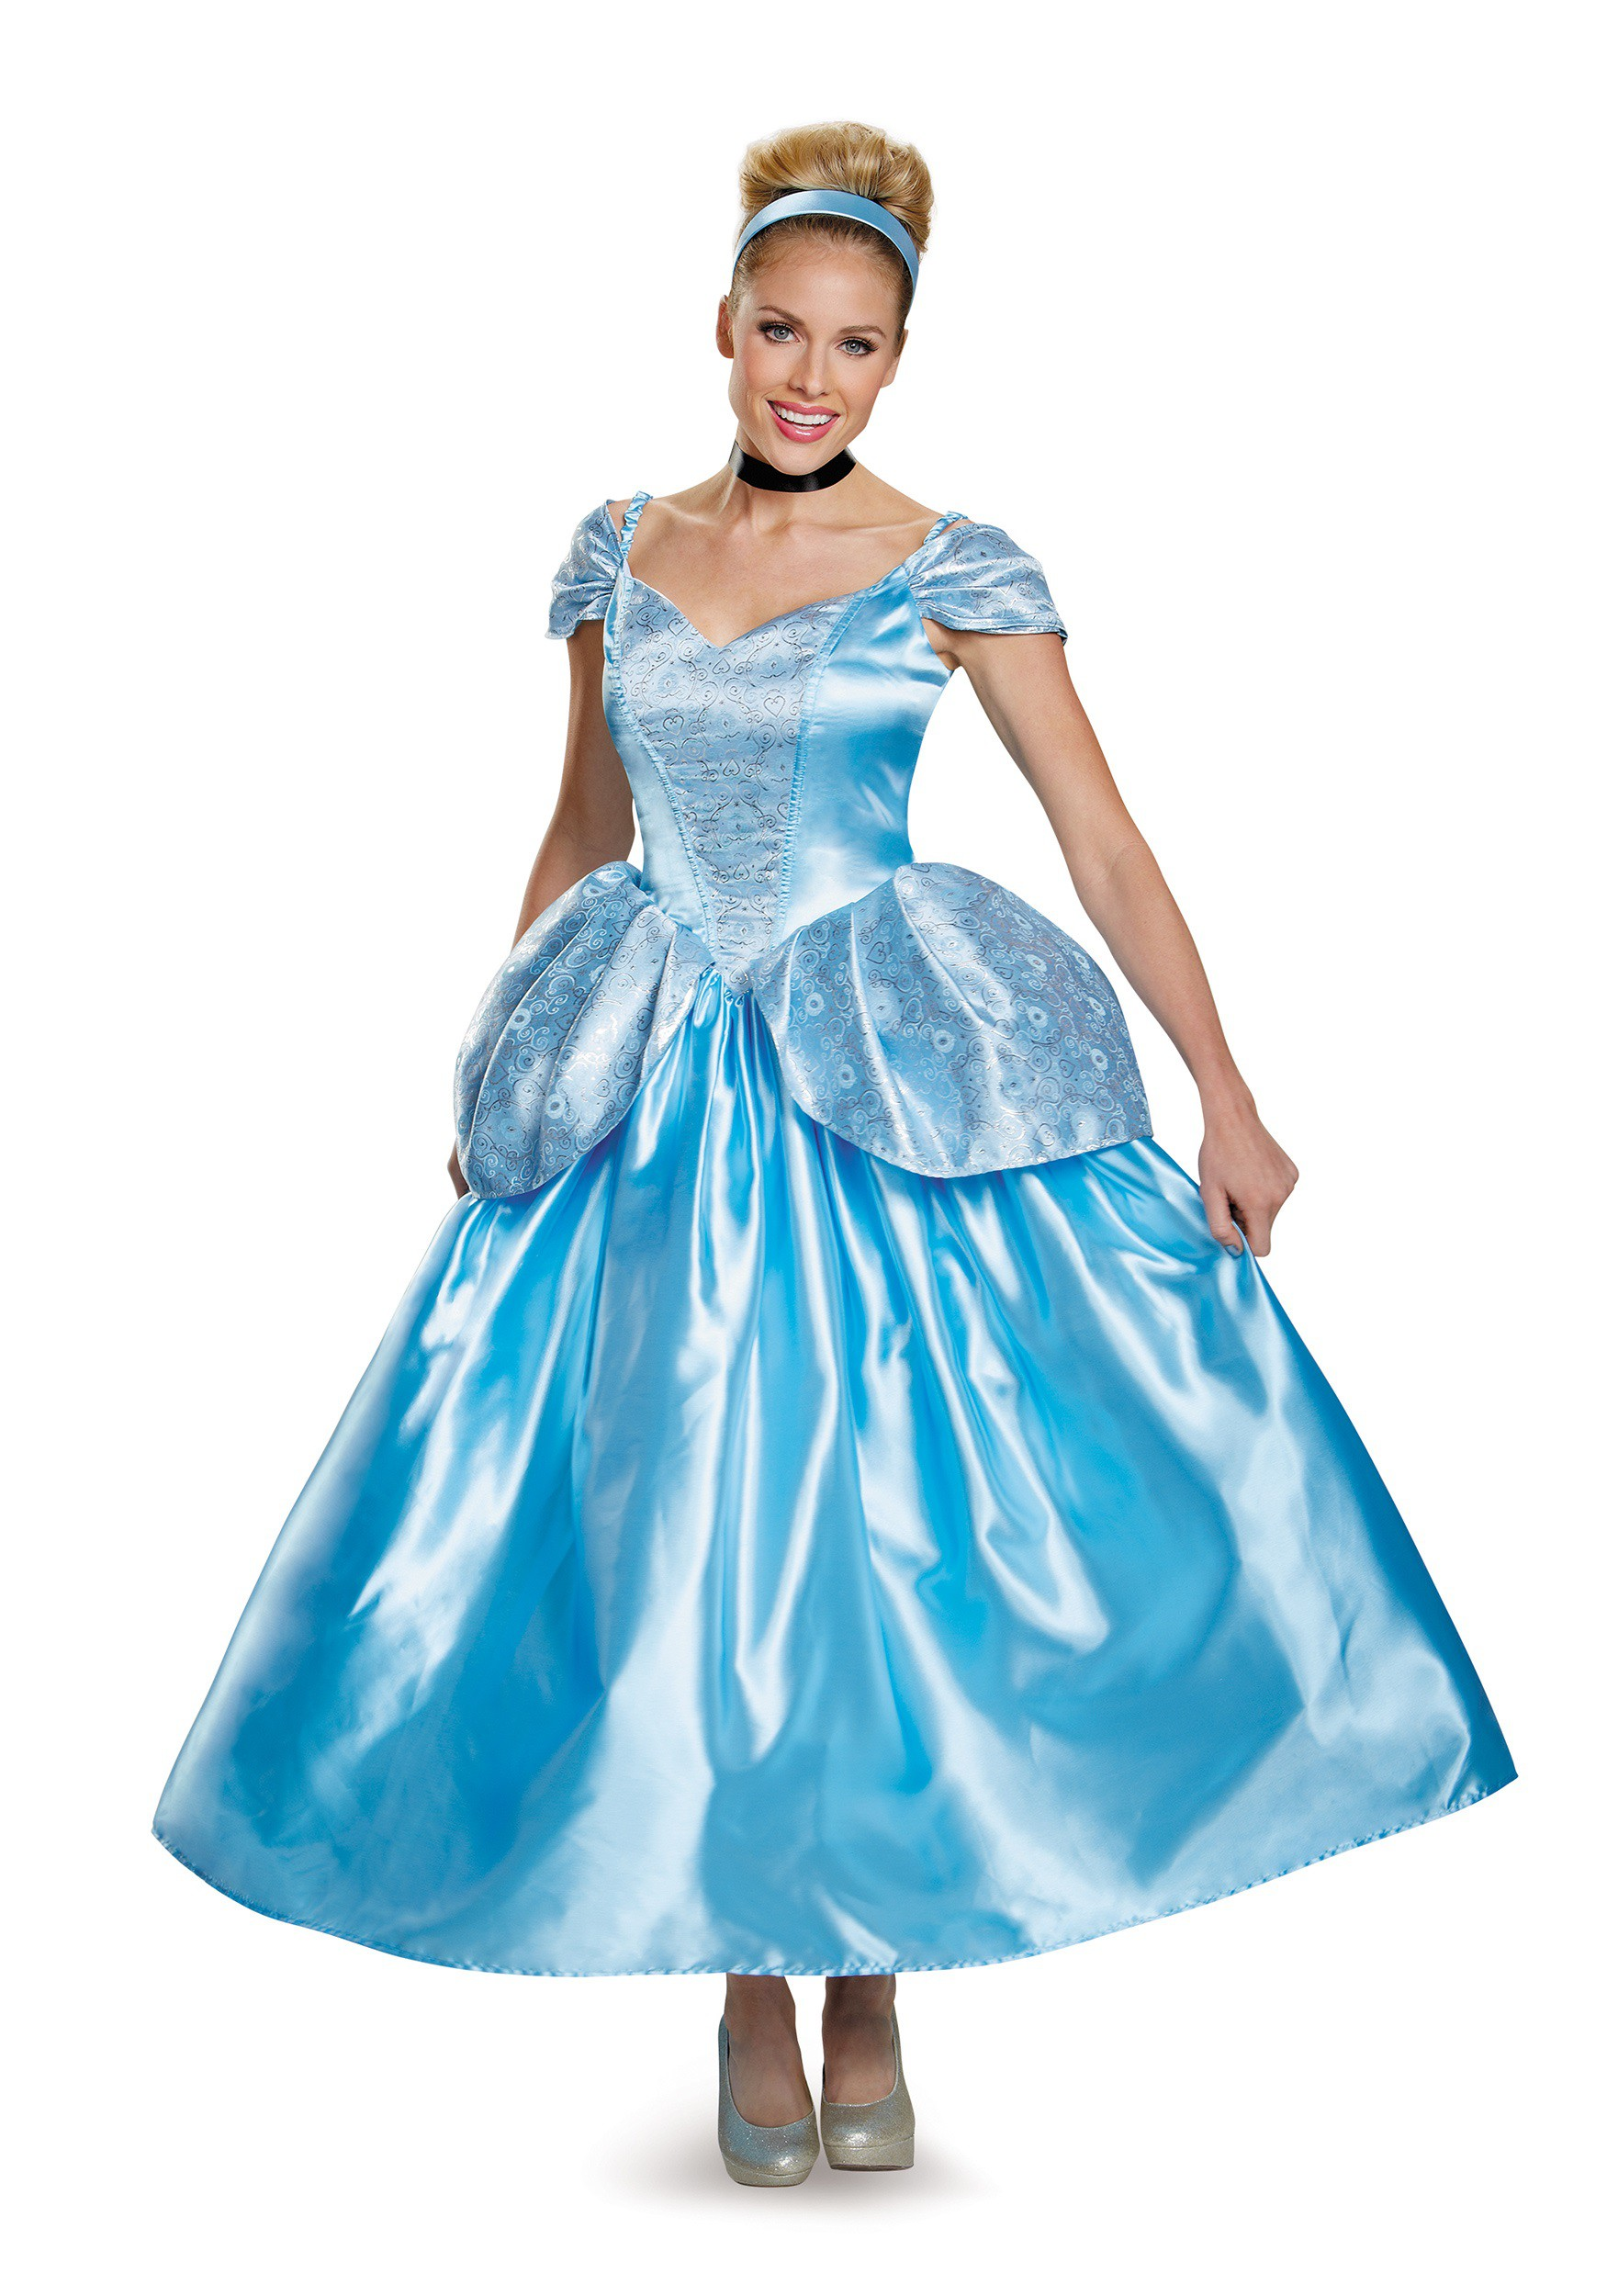 sc 1 st  Halloween Costumes : cinderella costumes for women  - Germanpascual.Com